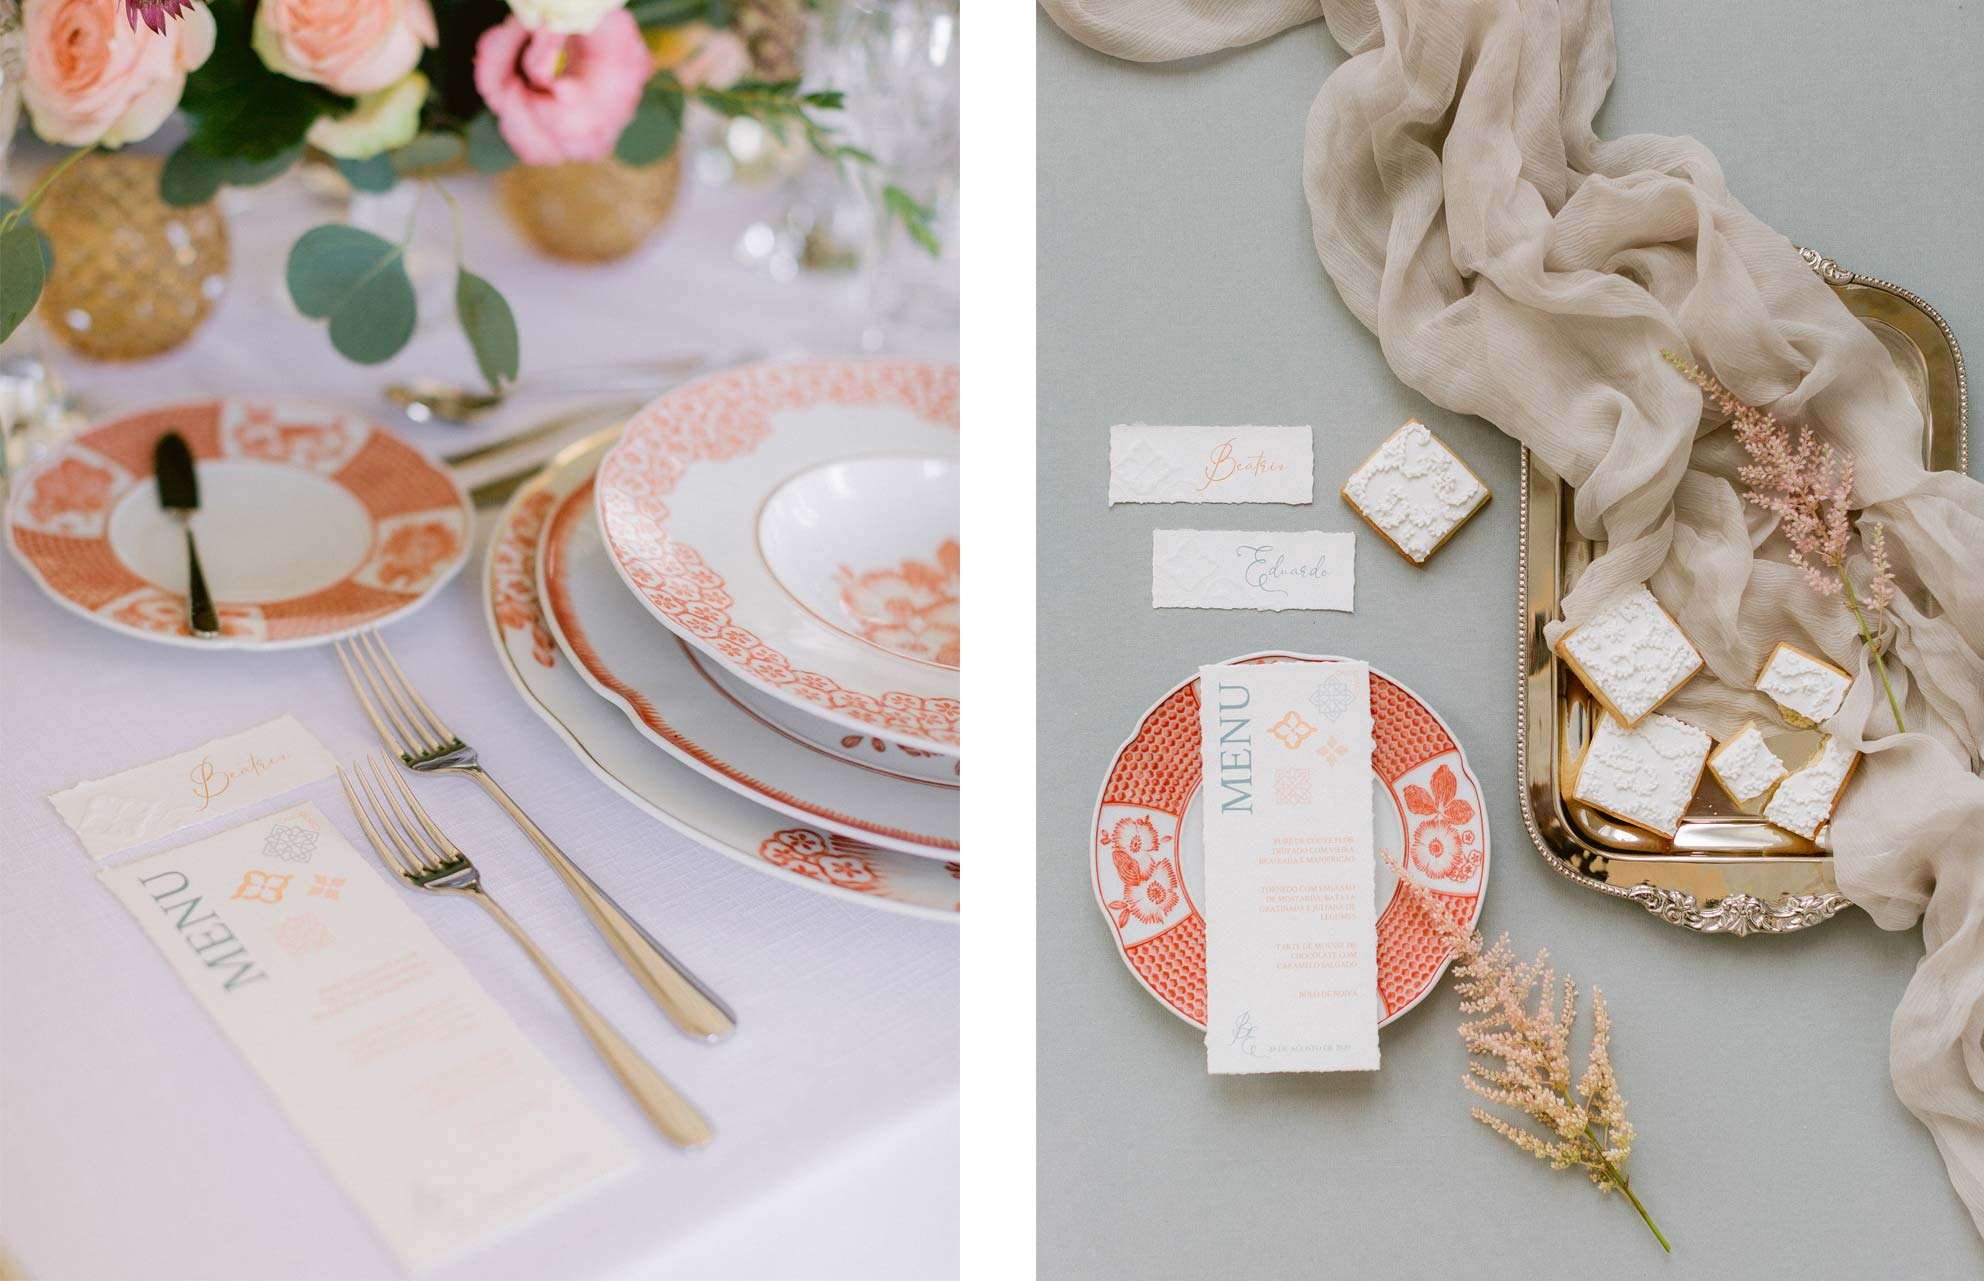 Louis-Vuitton-inspired-wedding-stationery-by-A-Pajarita